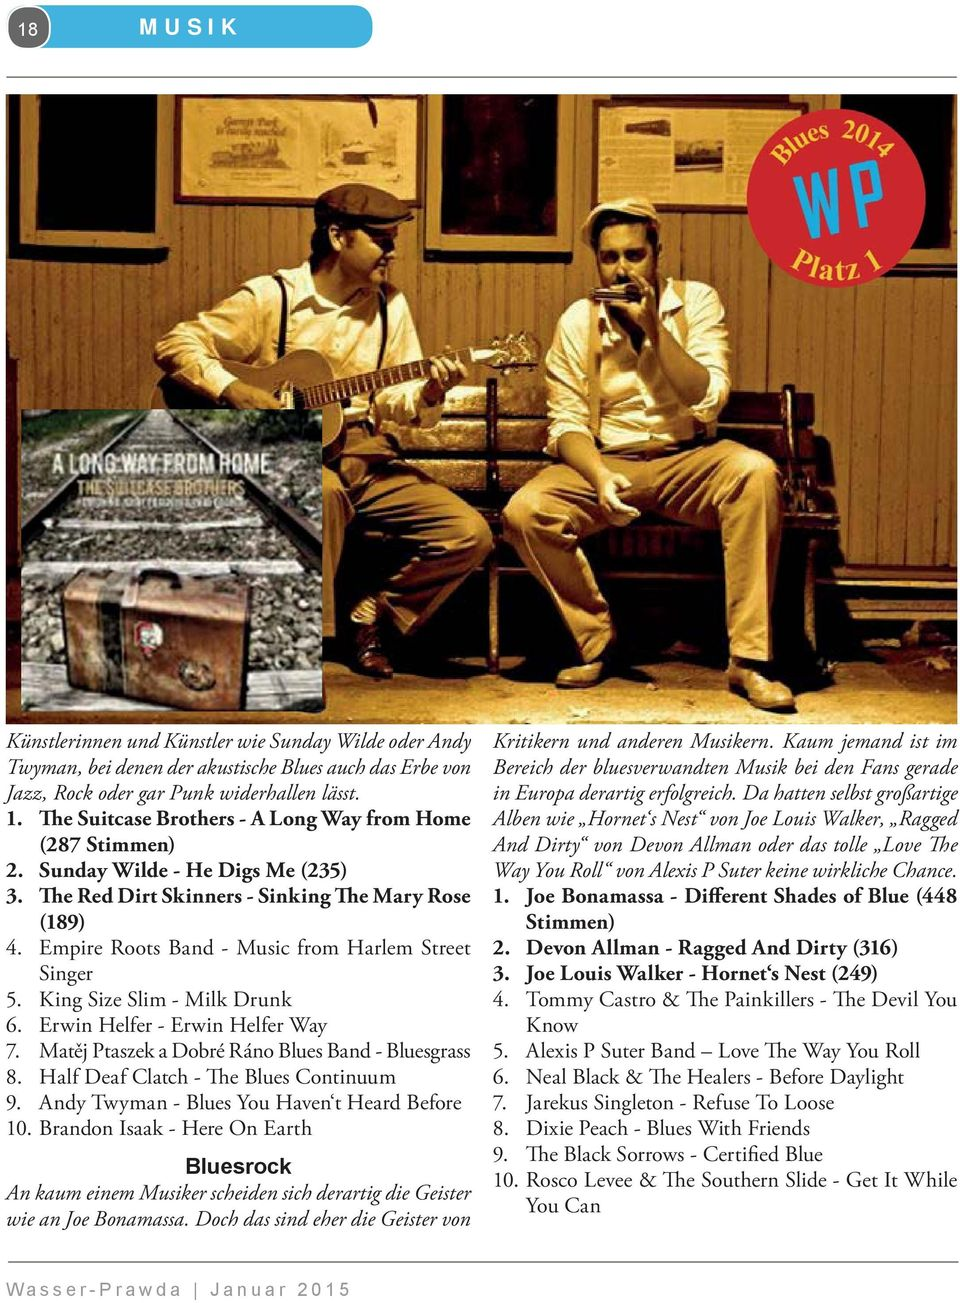 Empire Roots Band - Music from Harlem Street Singer 5. King Size Slim - Milk Drunk 6. Erwin Helfer - Erwin Helfer Way 7. Matěj Ptaszek a Dobré Ráno Blues Band - Bluesgrass 8.